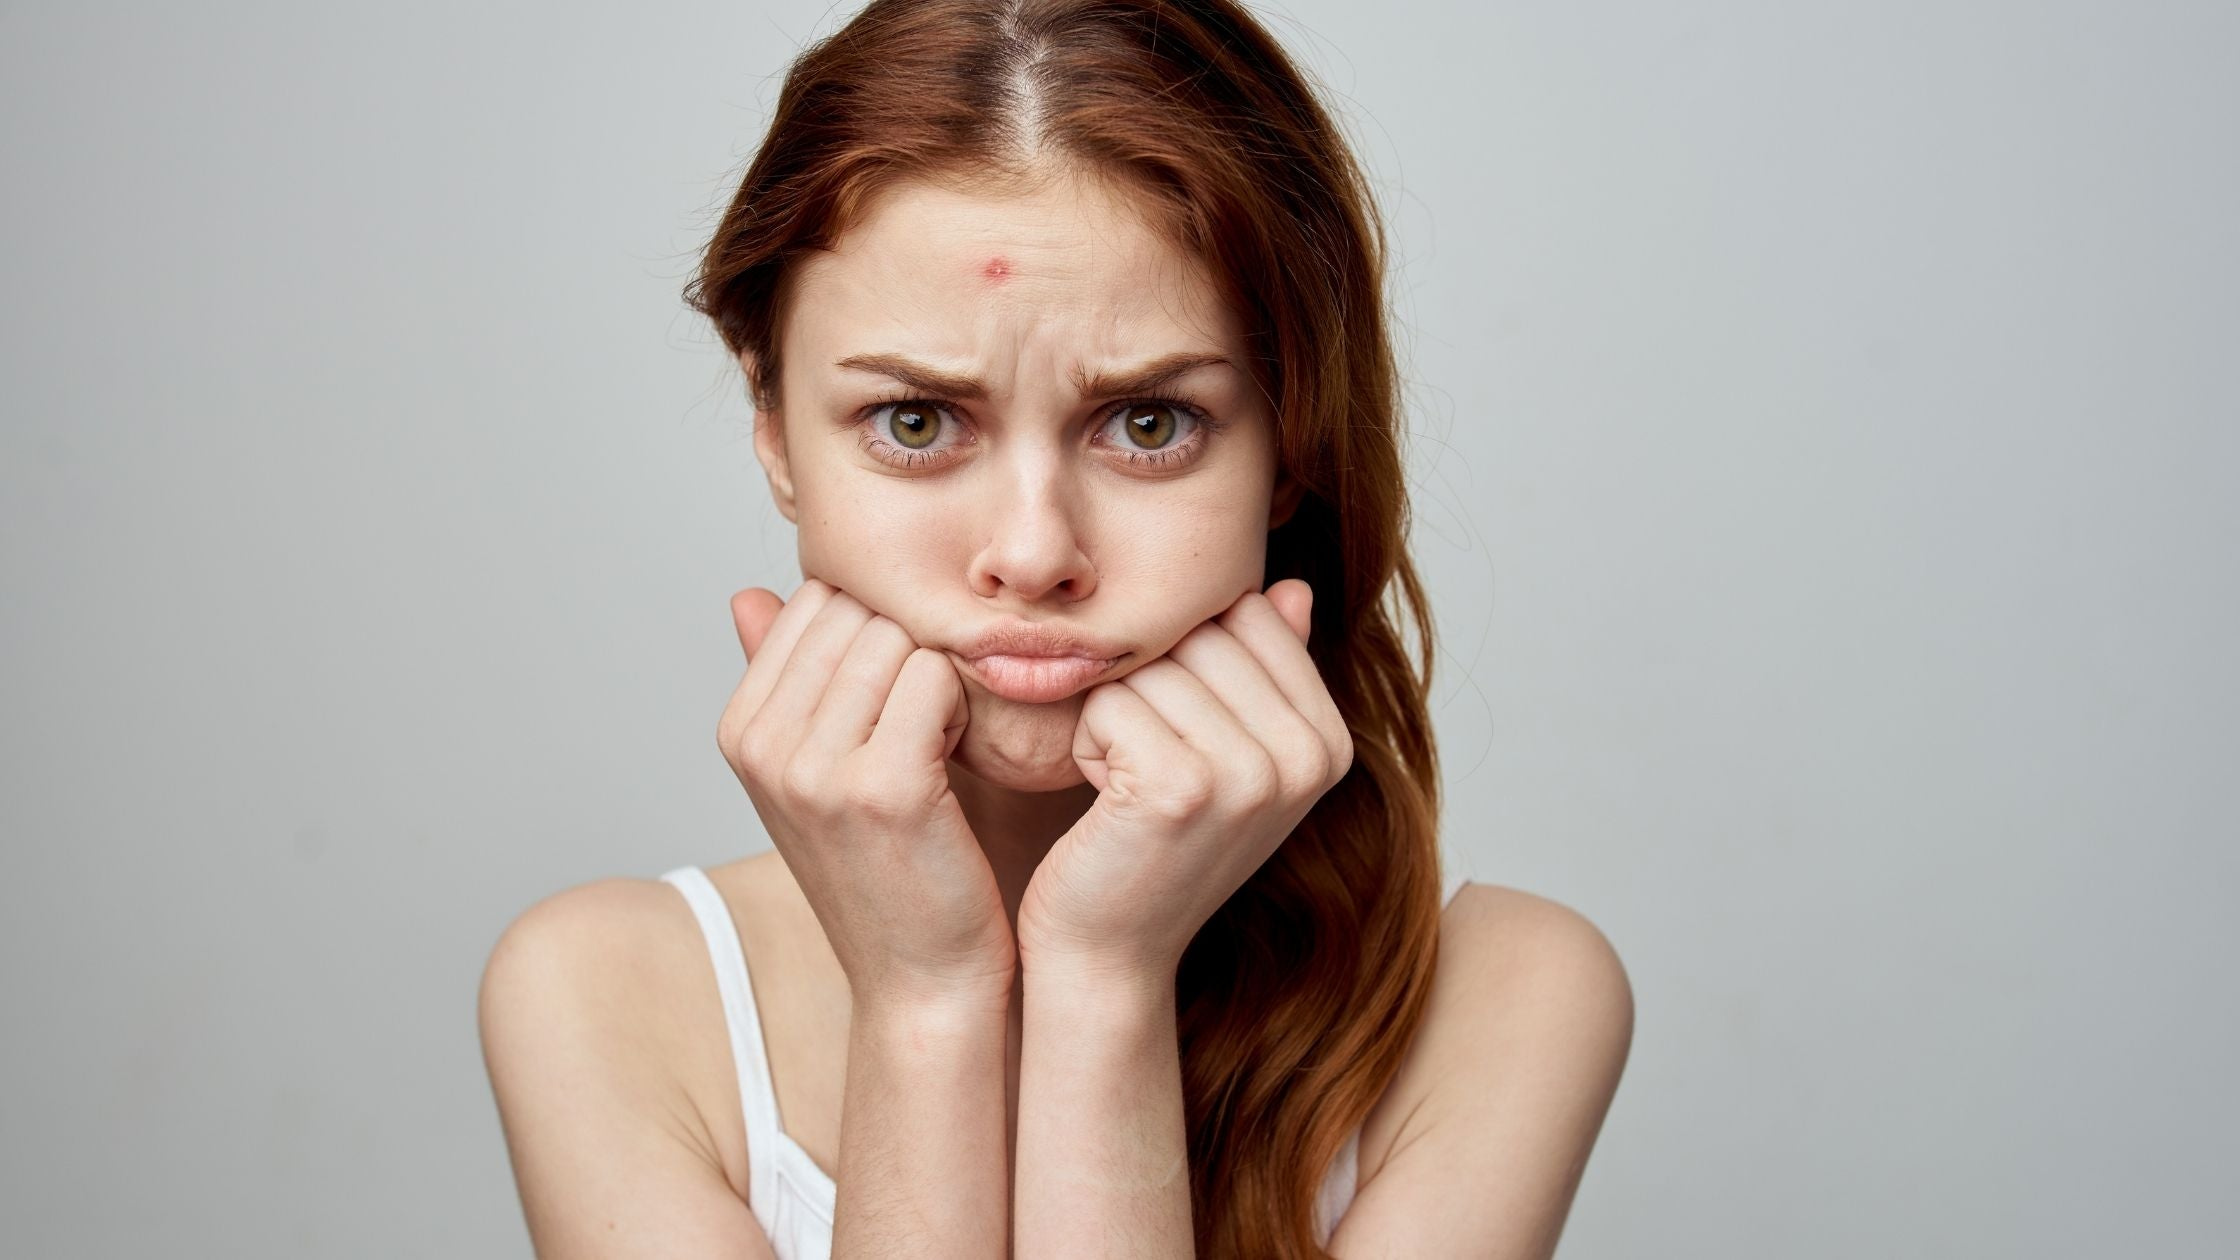 Dealing With Forehead Acne